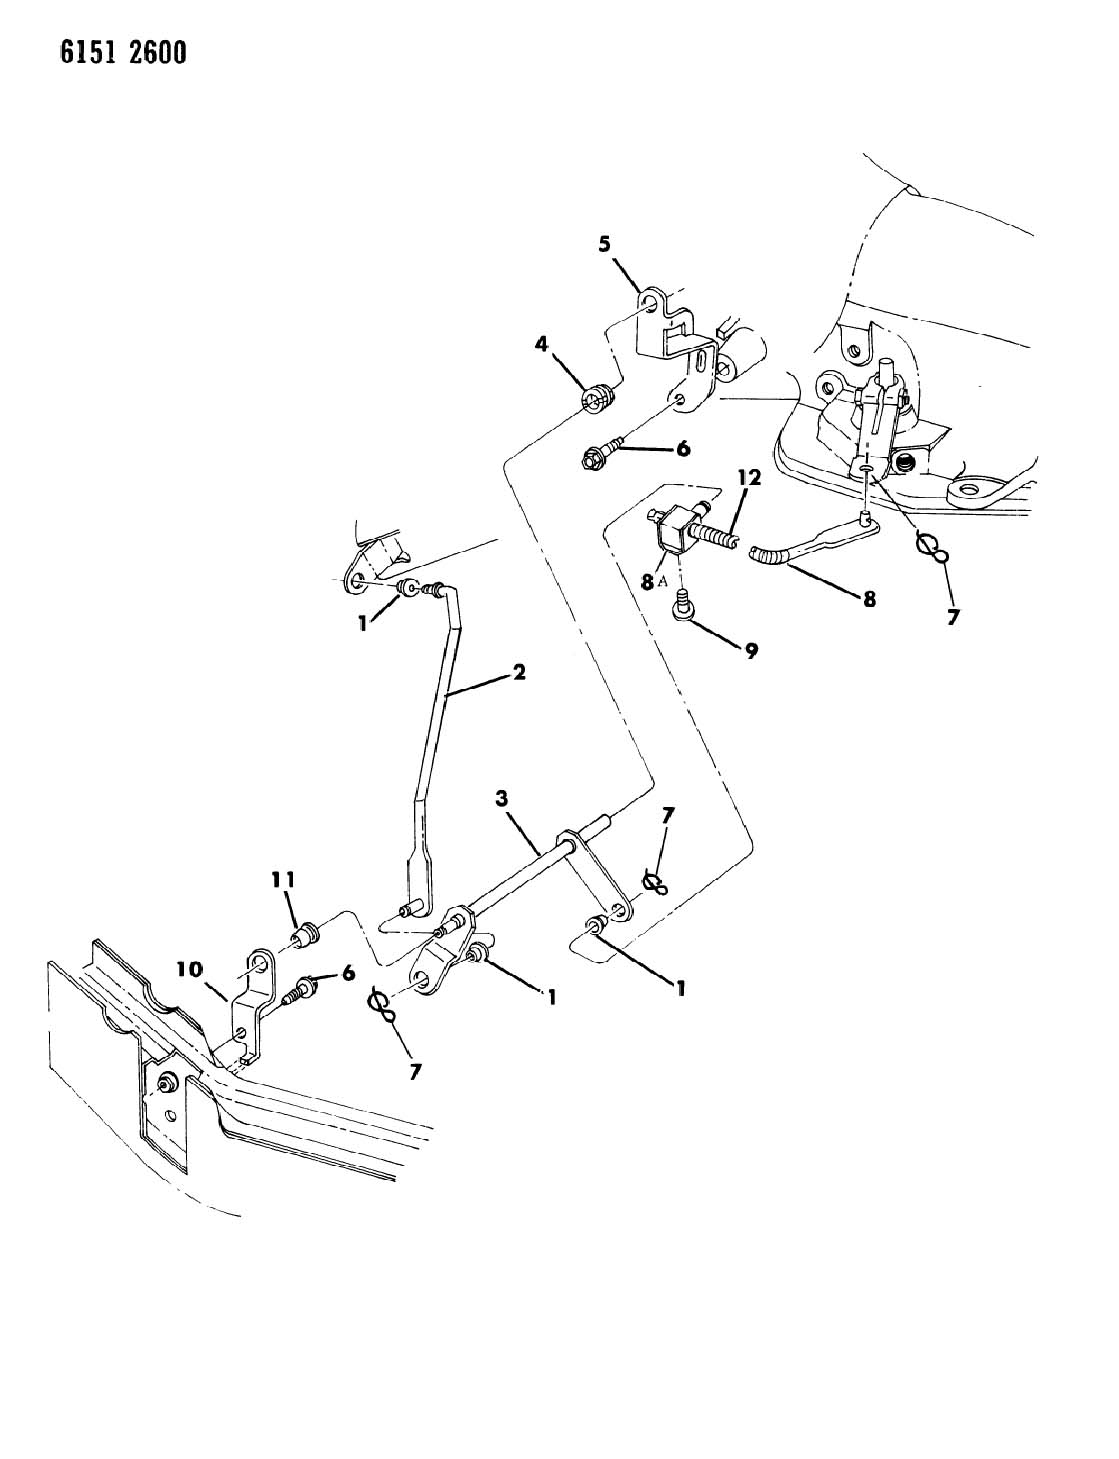 grommet torque shaft frame bracket dodge 86